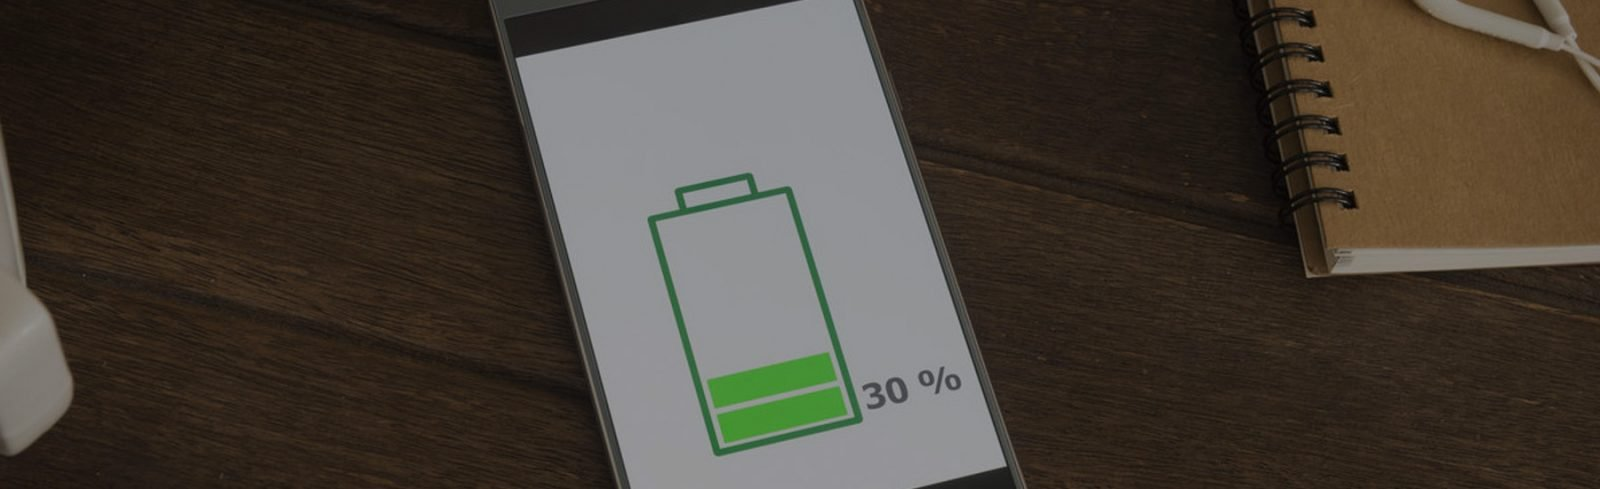 Our complete guide to the best battery life smartphones on the market